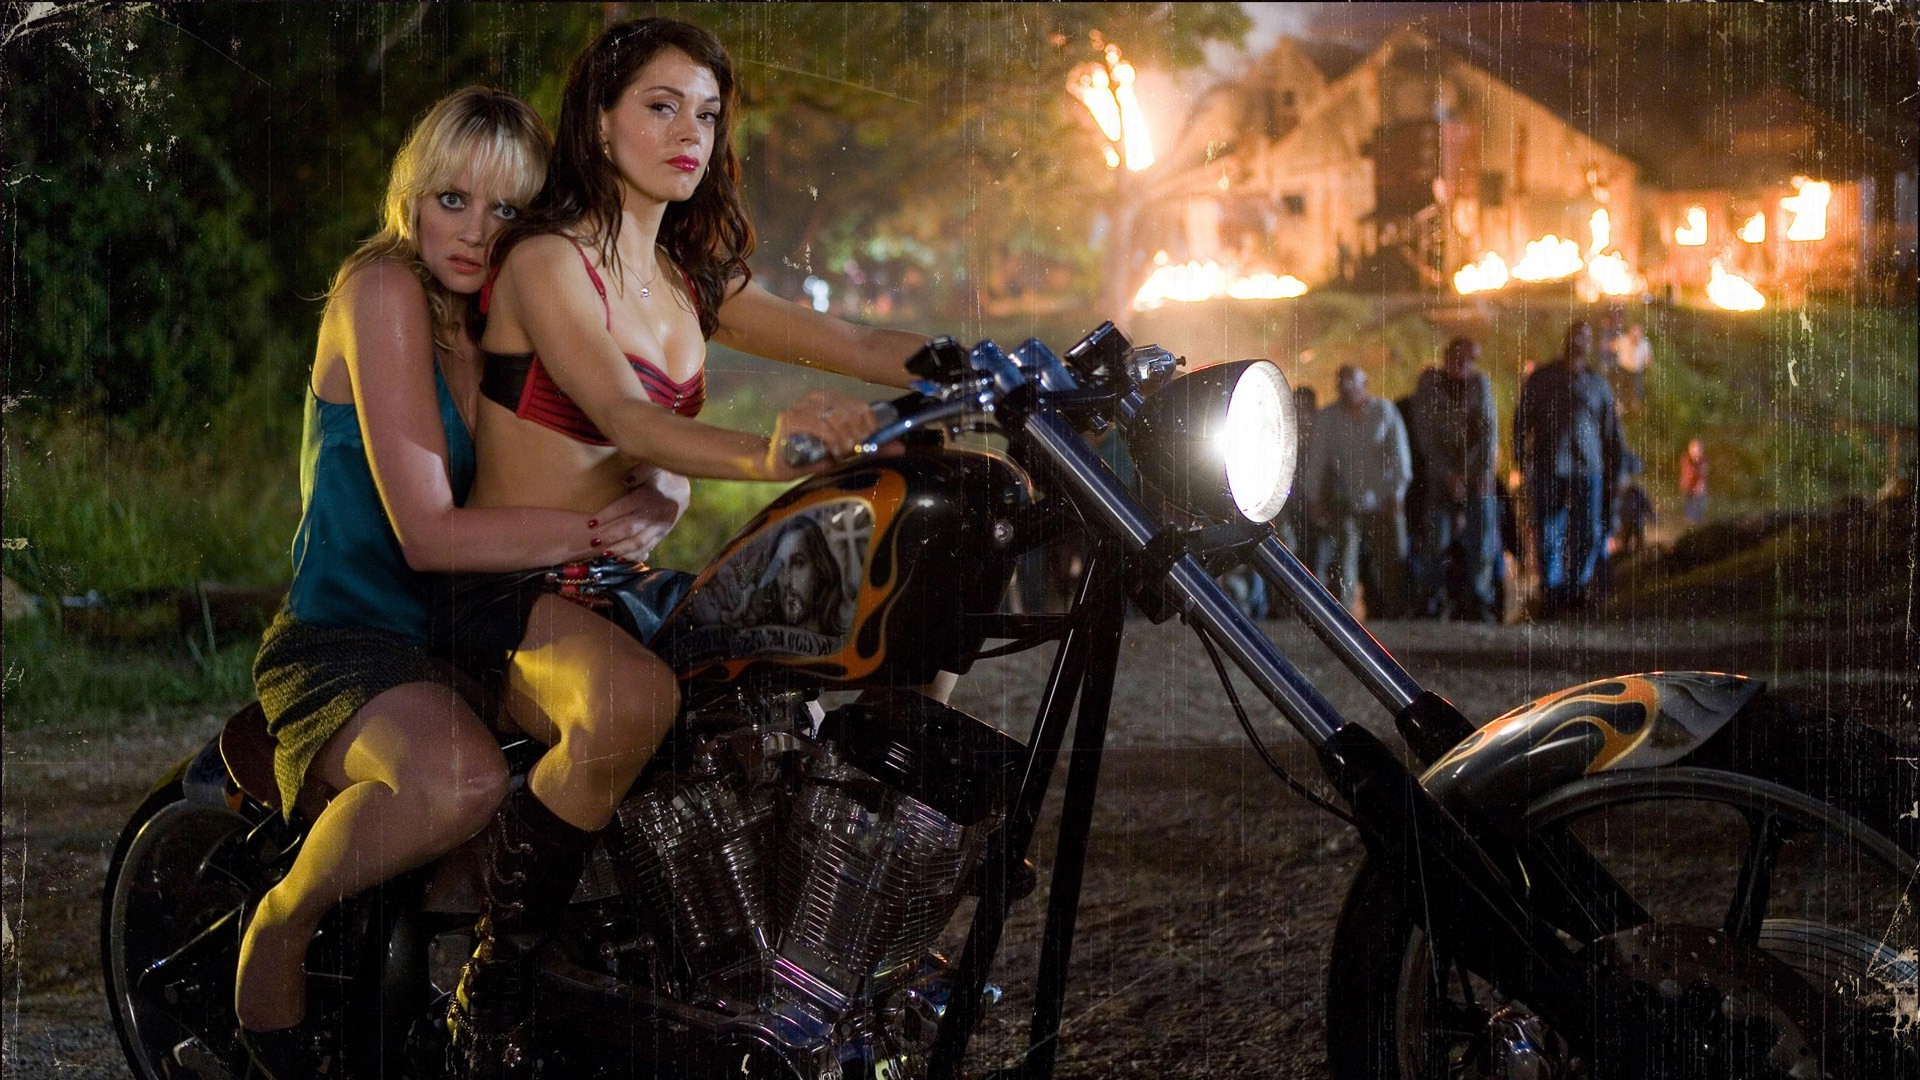 Biker Girl Wallpaper Free Download Movies Planet Terror Rose Mcgowan Wallpapers Hd